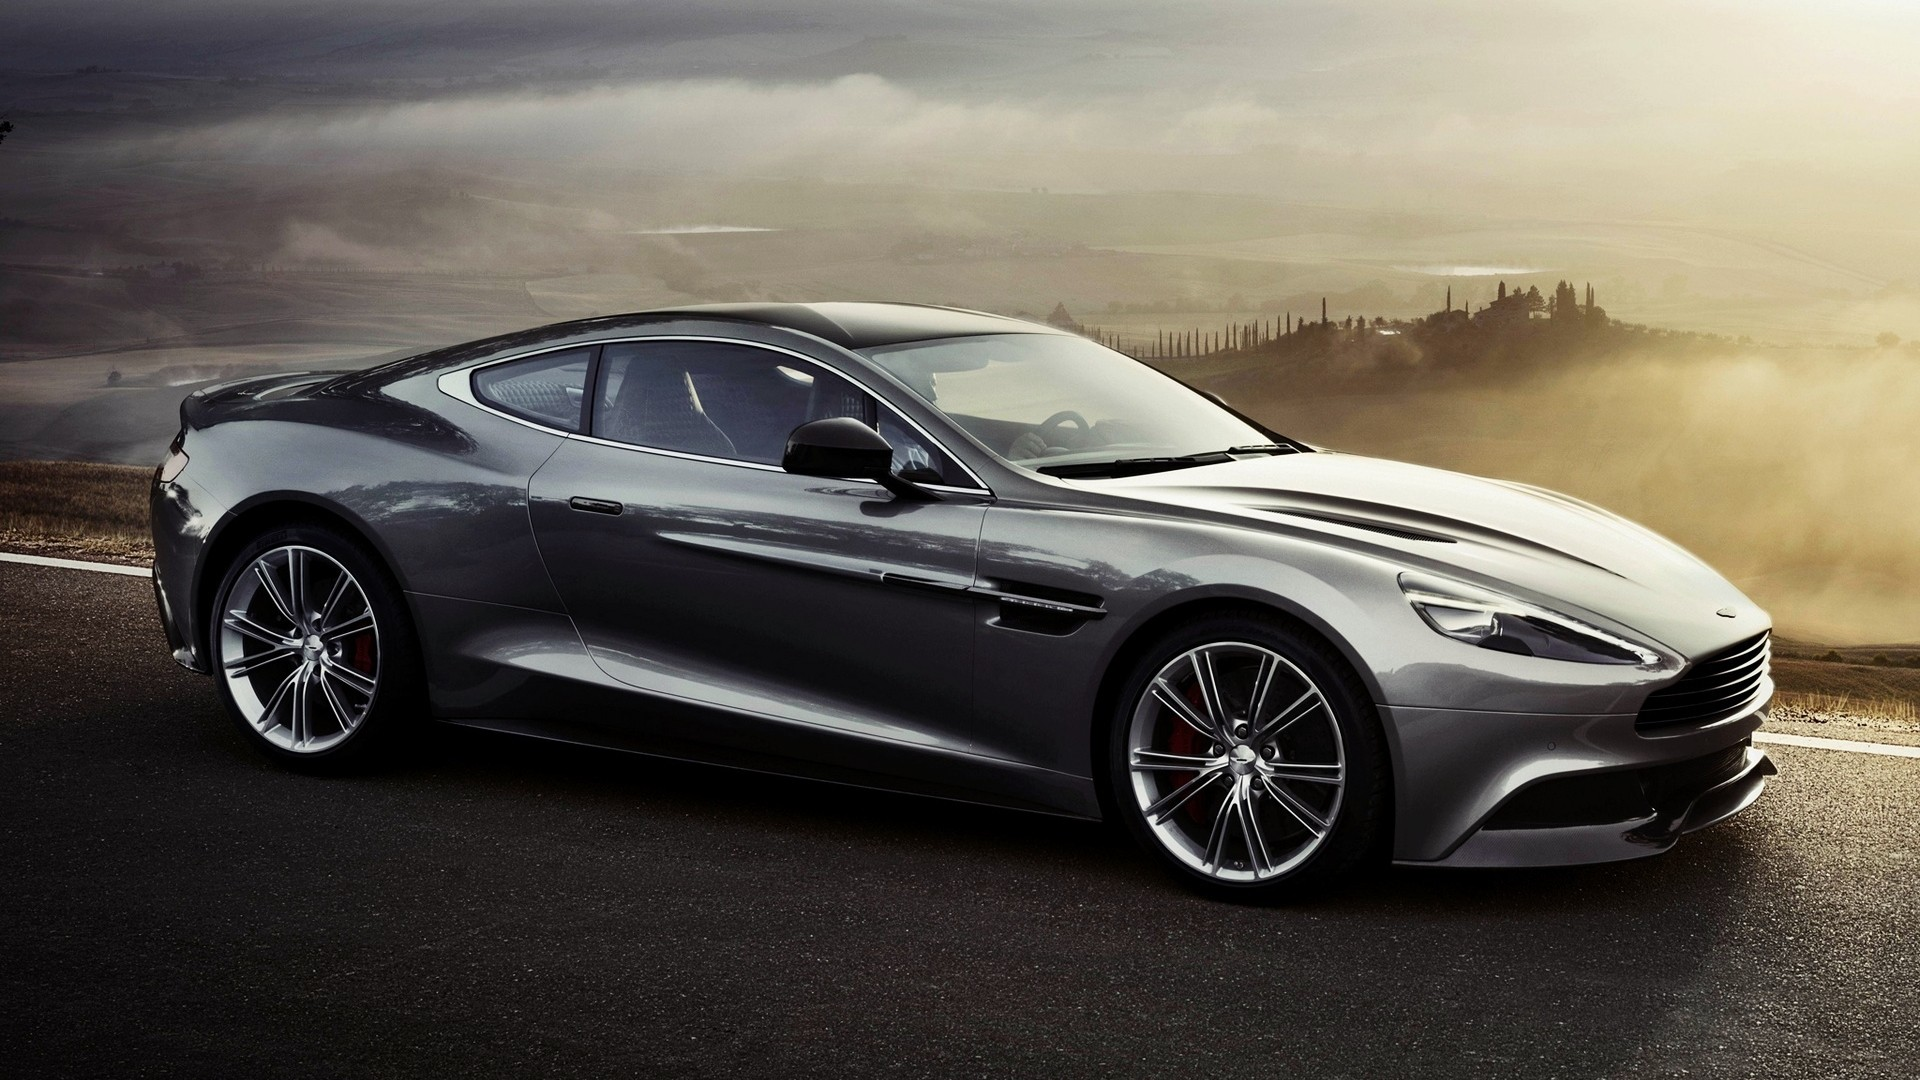 Download Latest Hd Wallpapers Of Vehicles Aston Martin Dbs